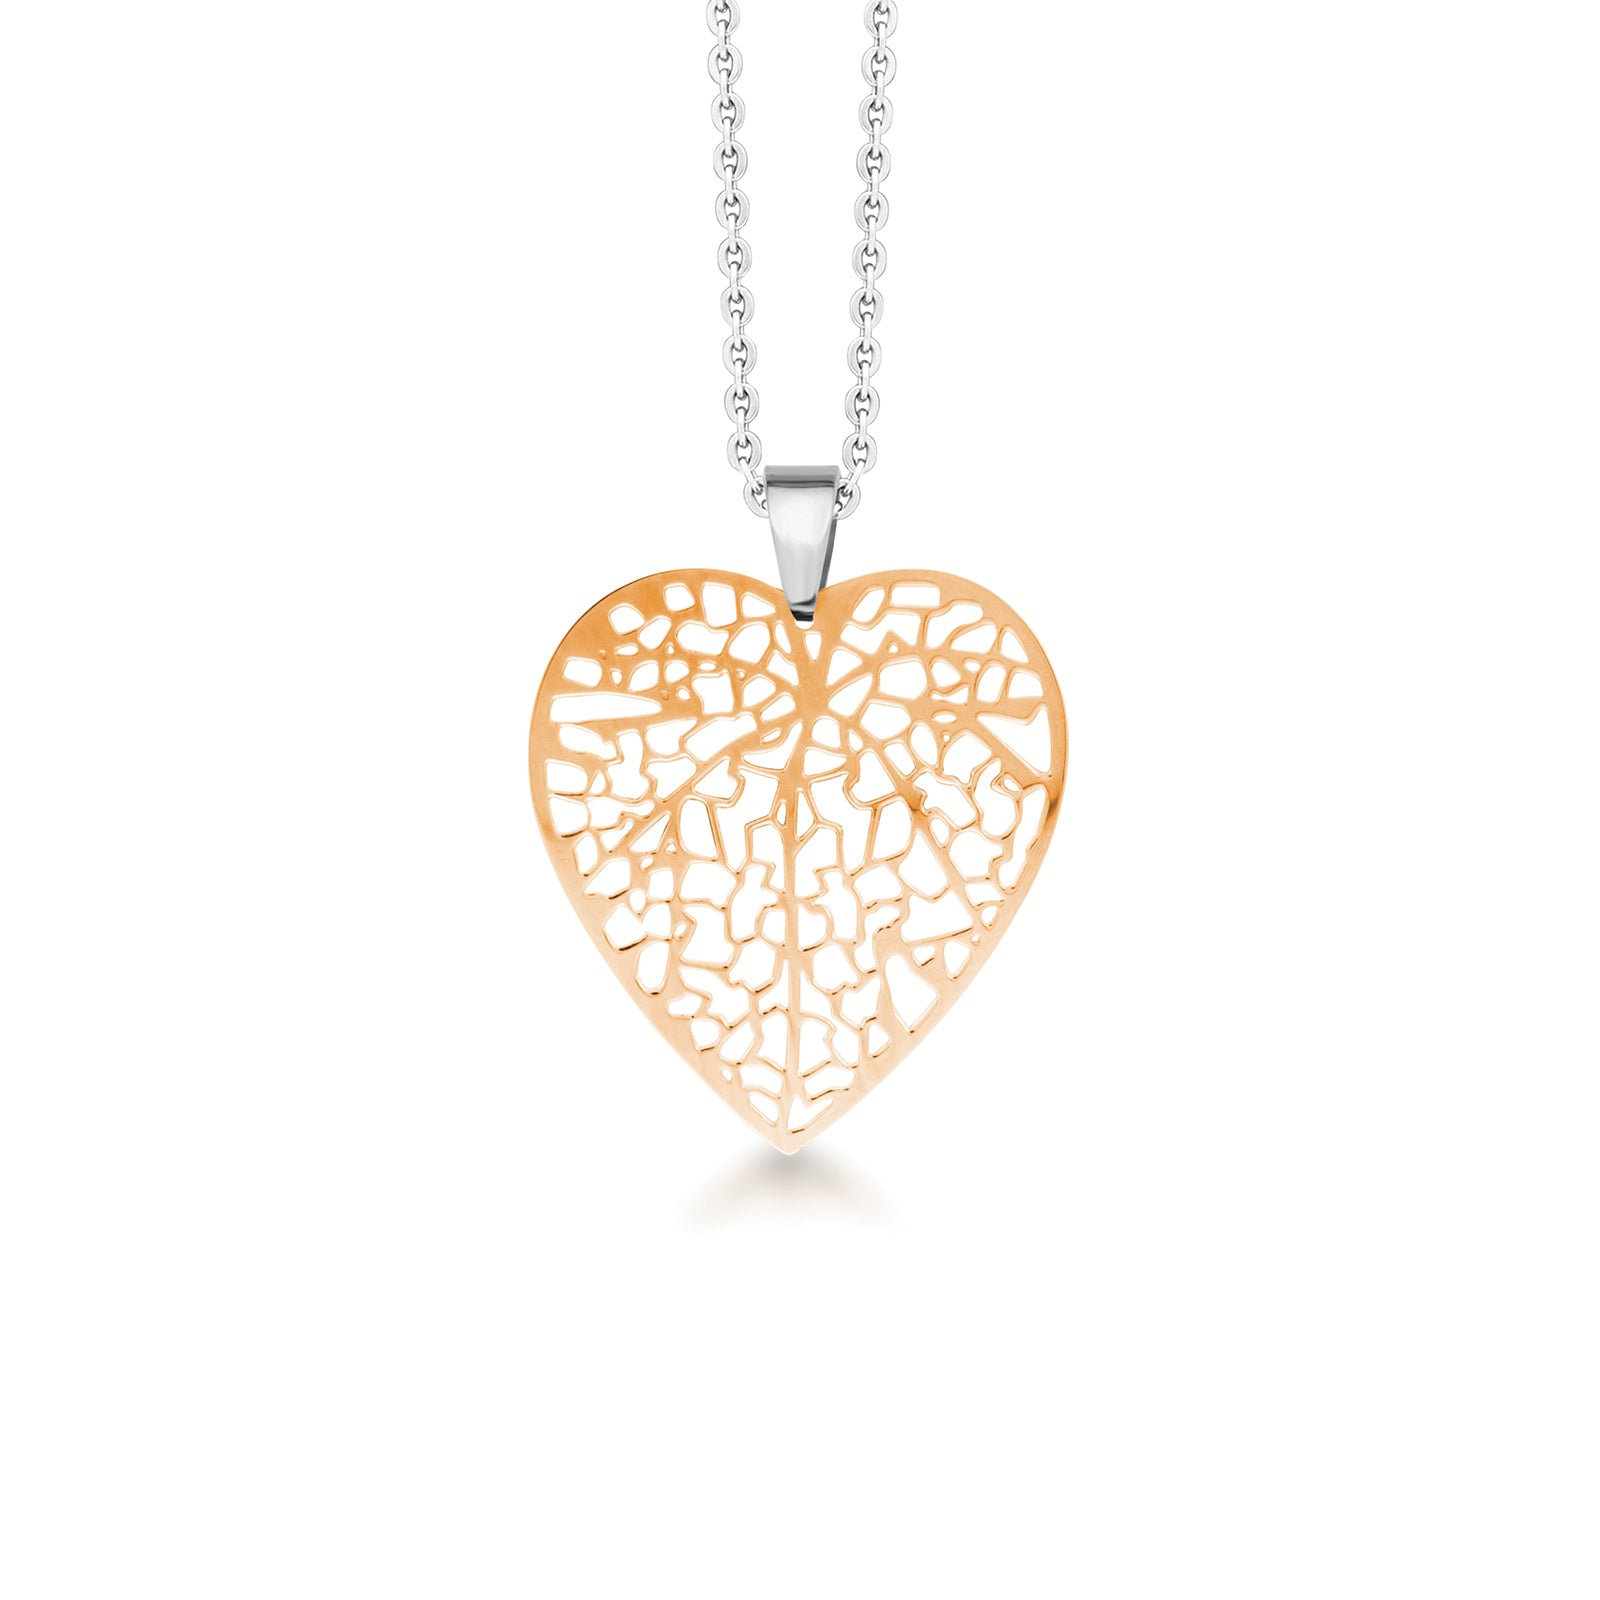 MNC-P033-B Steel & Rose Gold Heart Pendant Necklace